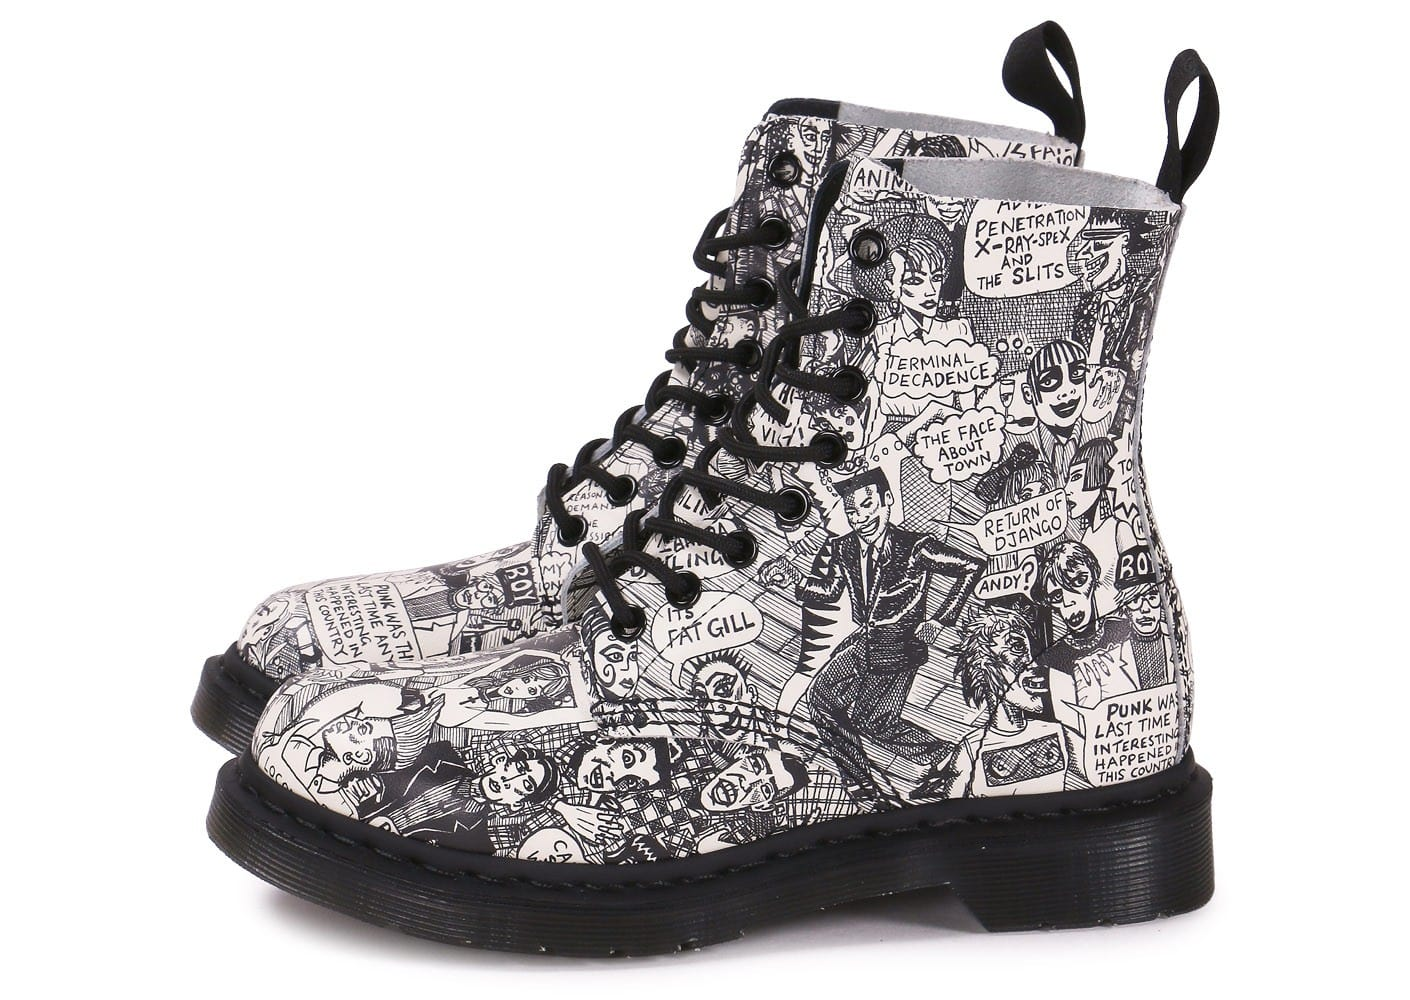 Populaire Dr Martens Pascal Mark Wigan print - Chaussures Chaussures - Chausport CI15